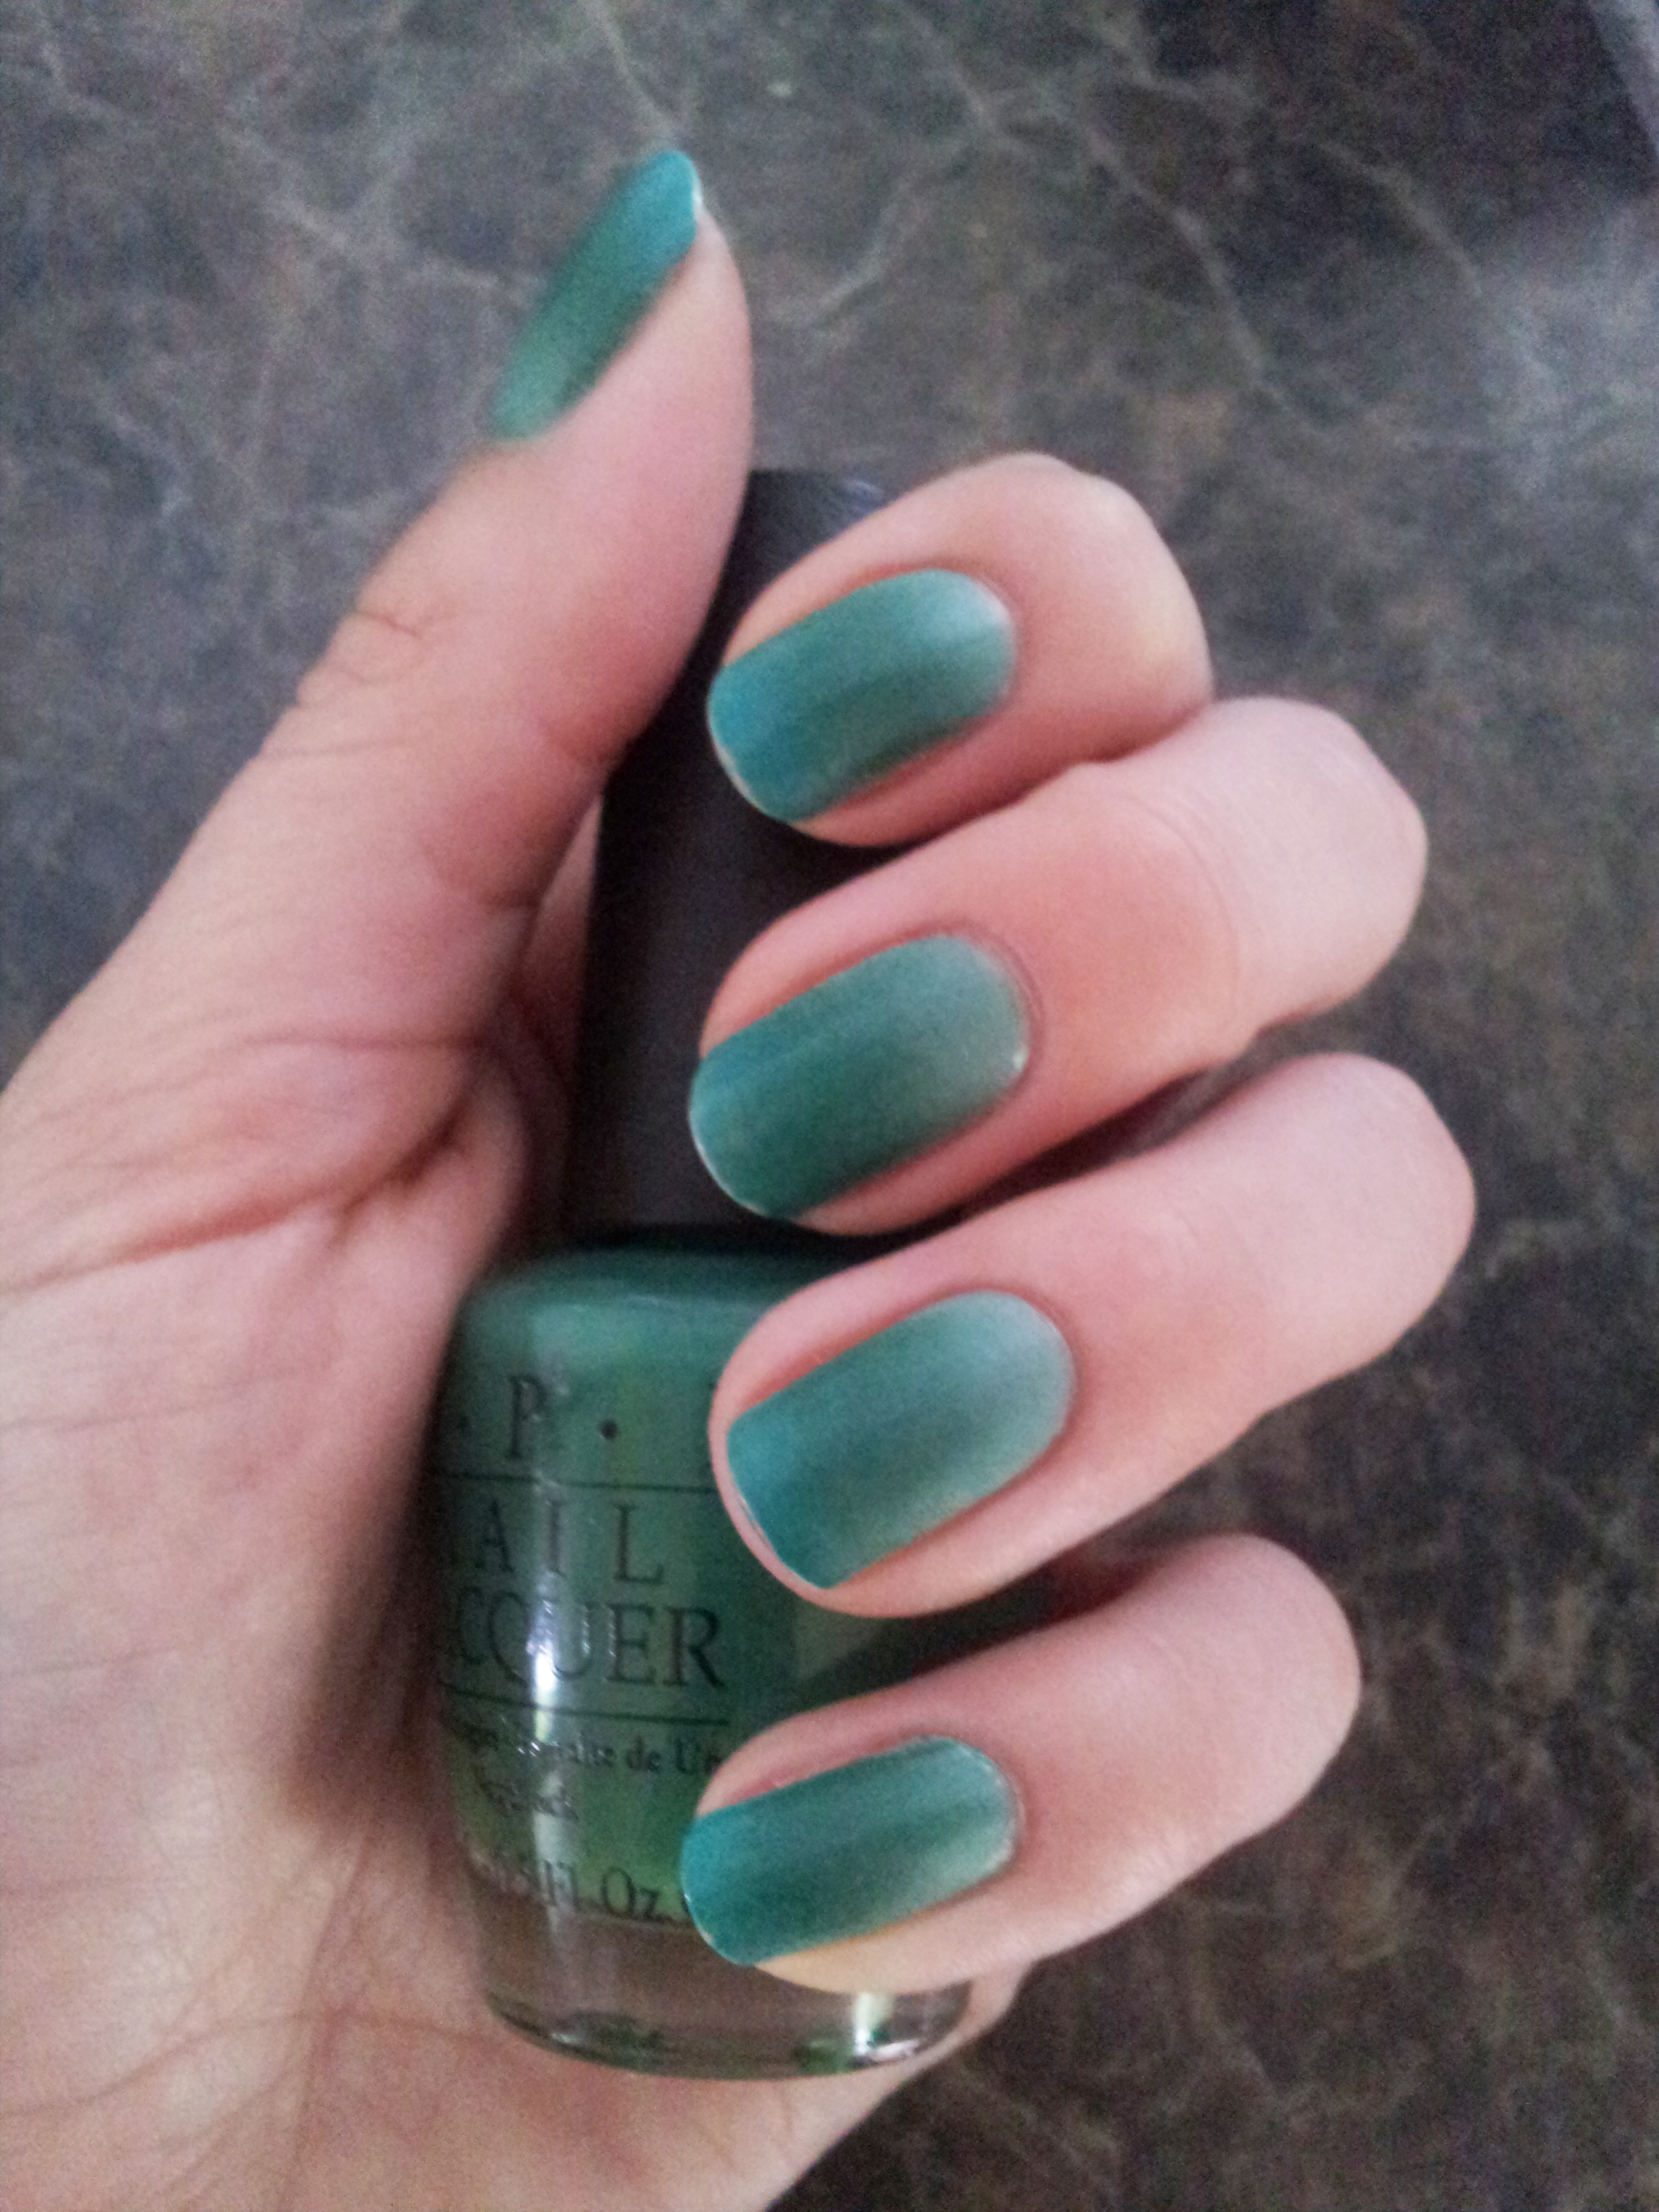 Green Ombre Nails - Beauty Lust NZ | Beauty & Lifestyle Blog